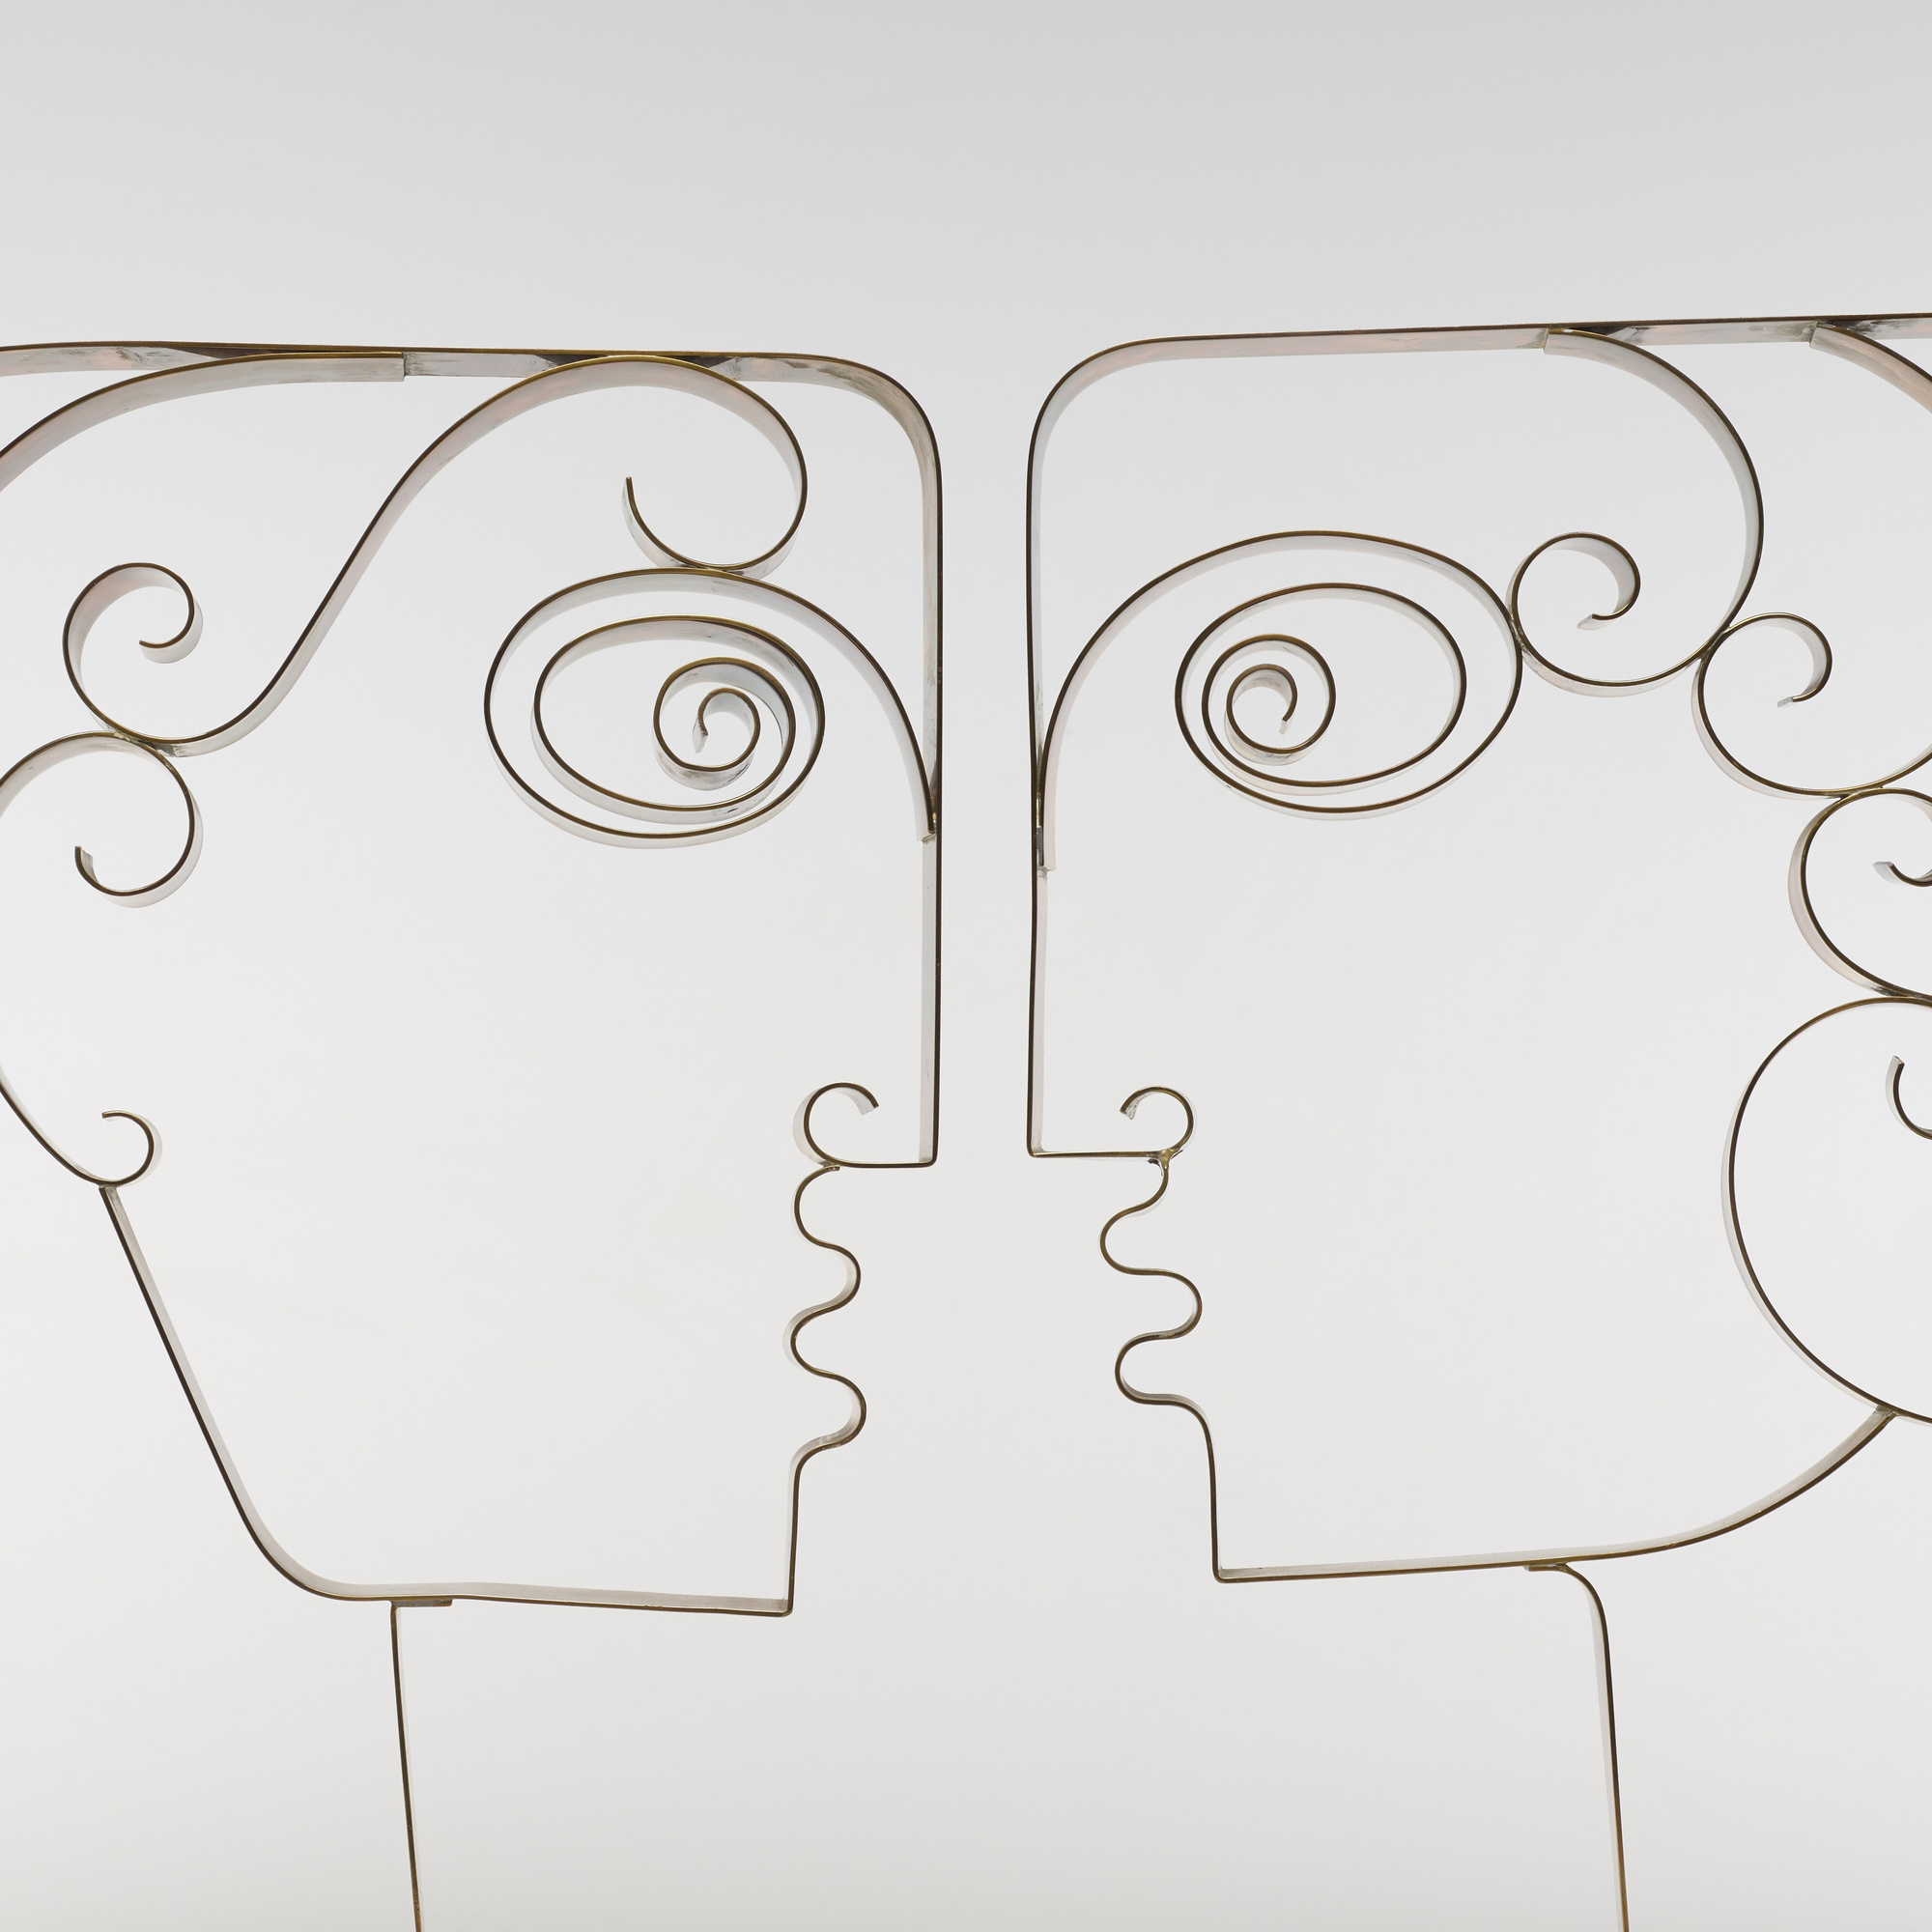 131: Franz Hagenauer / heads in profile, pair (2 of 2)